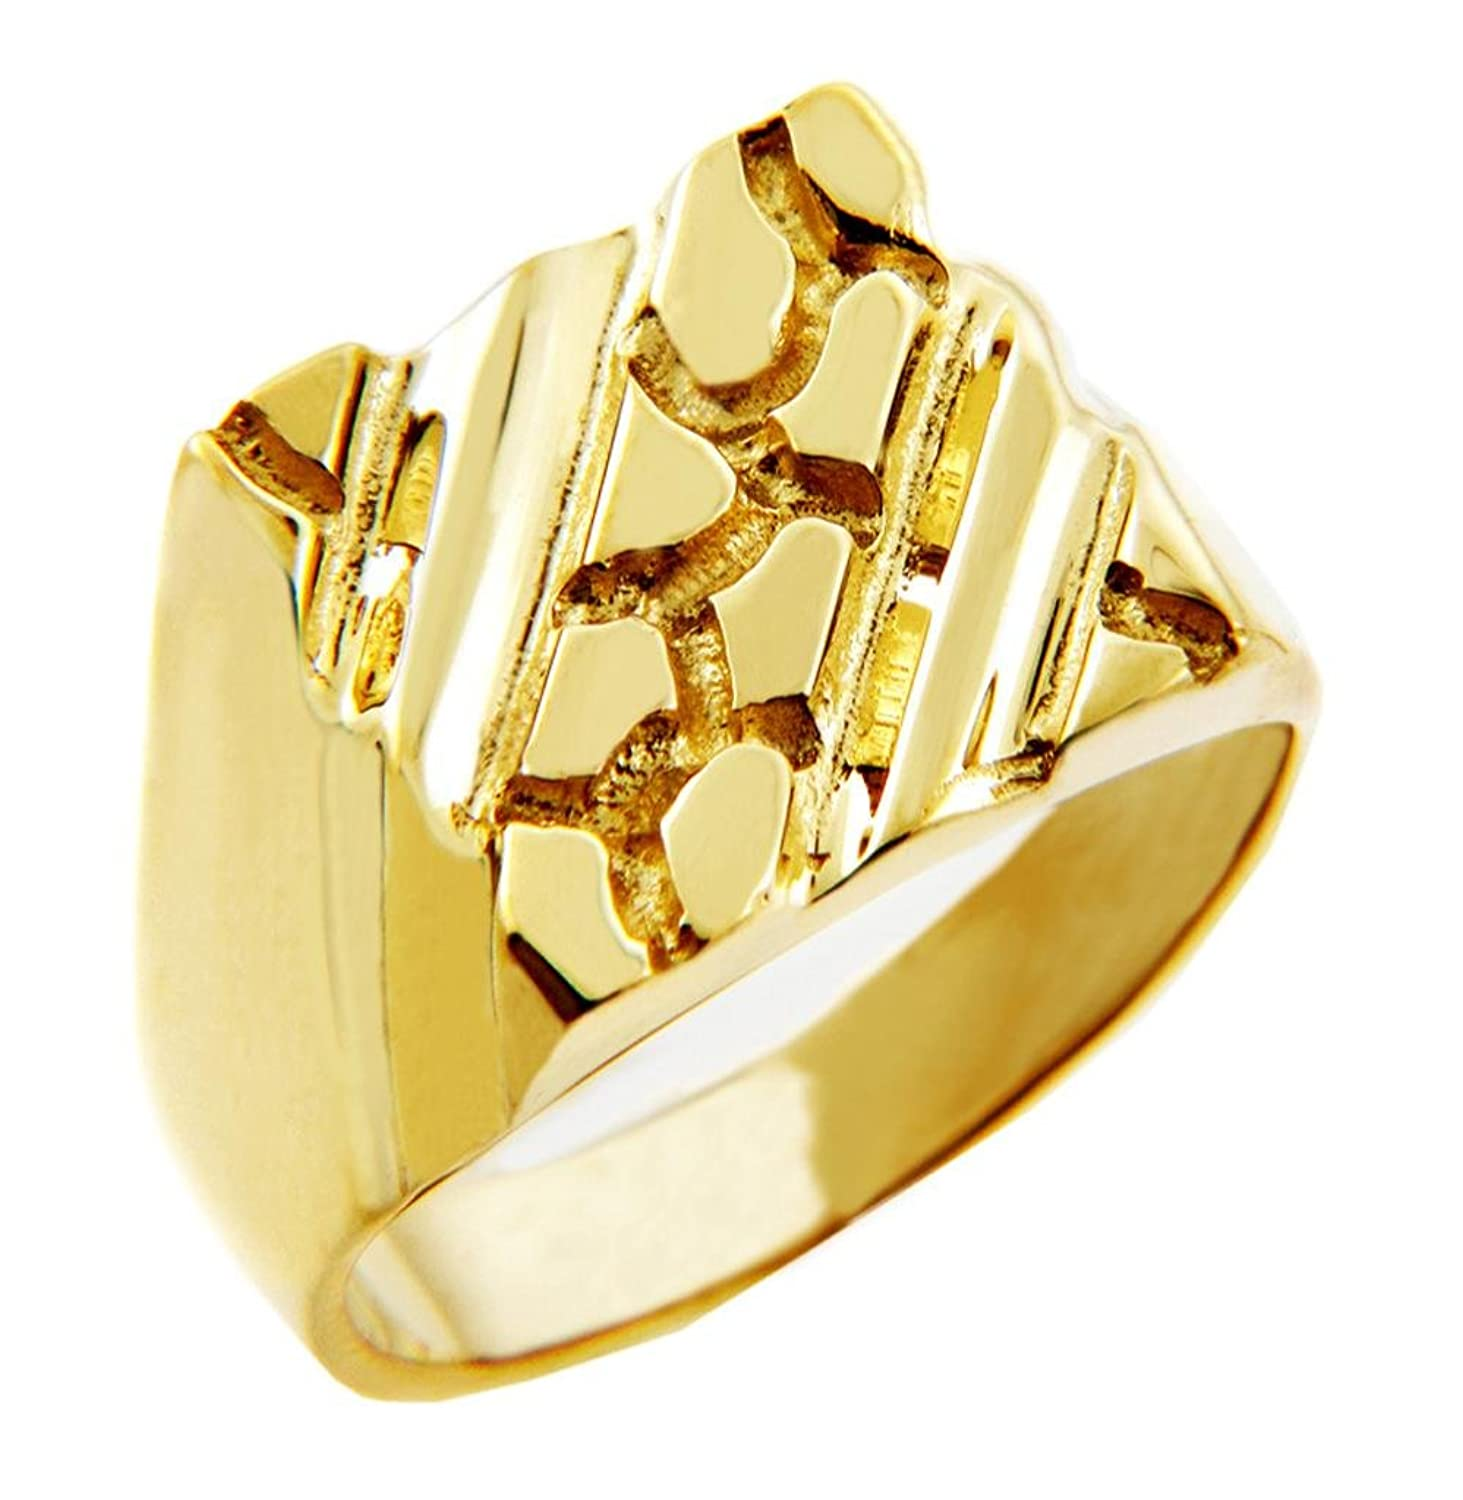 jl gold for products ring three with women size rings diamonds super au sale